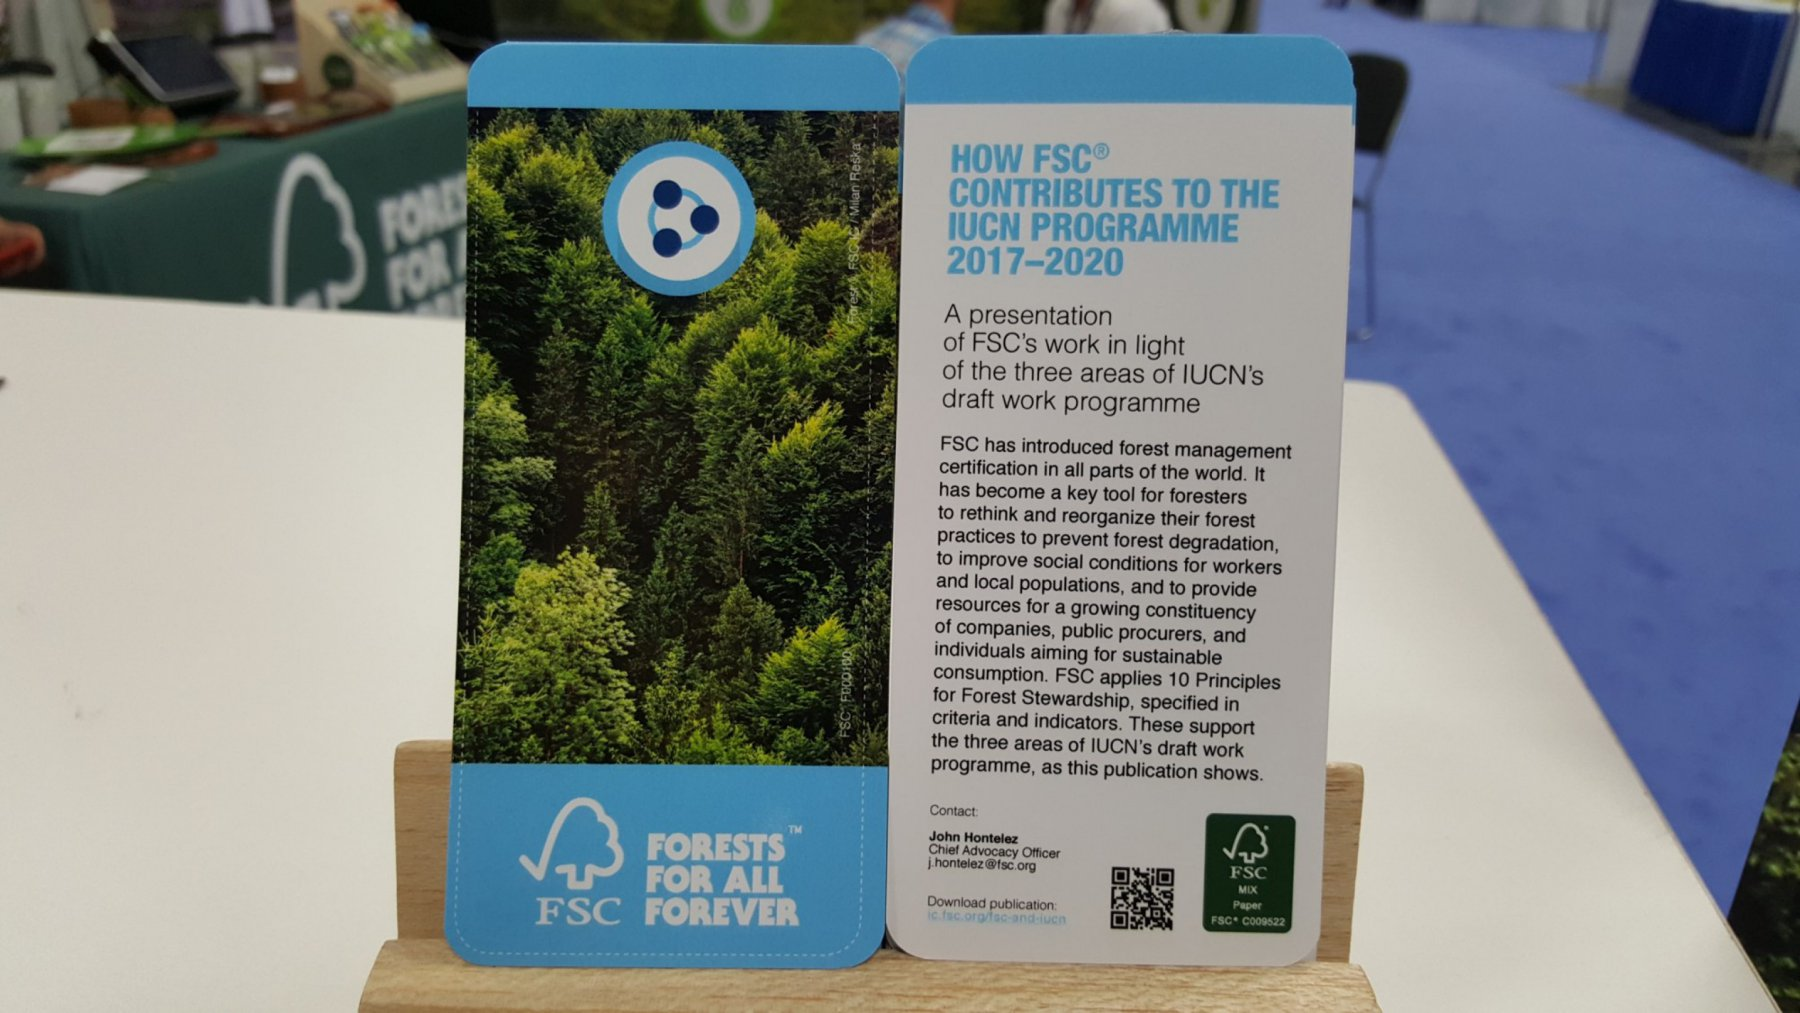 Fsc at the iucn wcc 2016 fsc international how fsc contributes to the iucn programme 20172020 xflitez Image collections